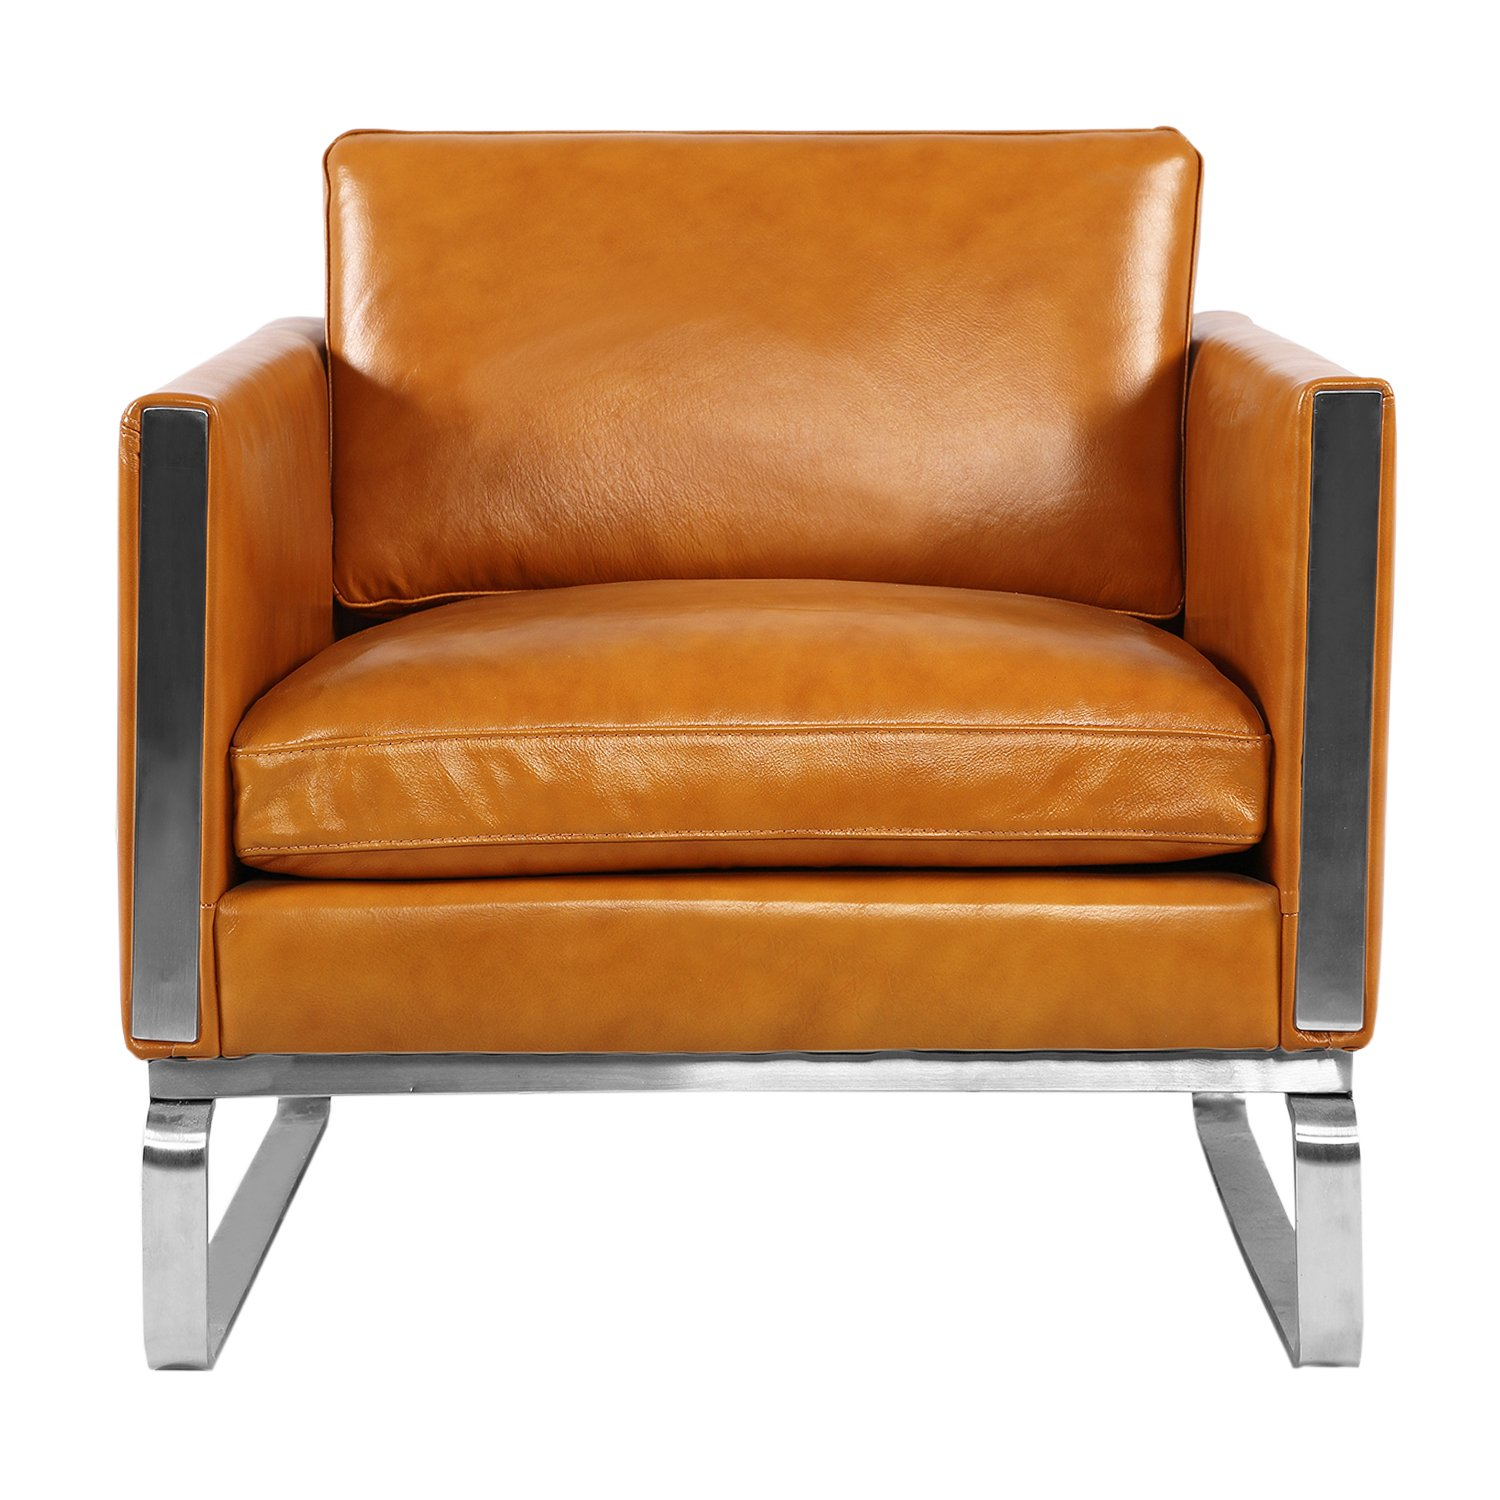 Admirable Amazon Com Kardiel Amsterdam Ch101 Mid Century Modern Chair Pdpeps Interior Chair Design Pdpepsorg